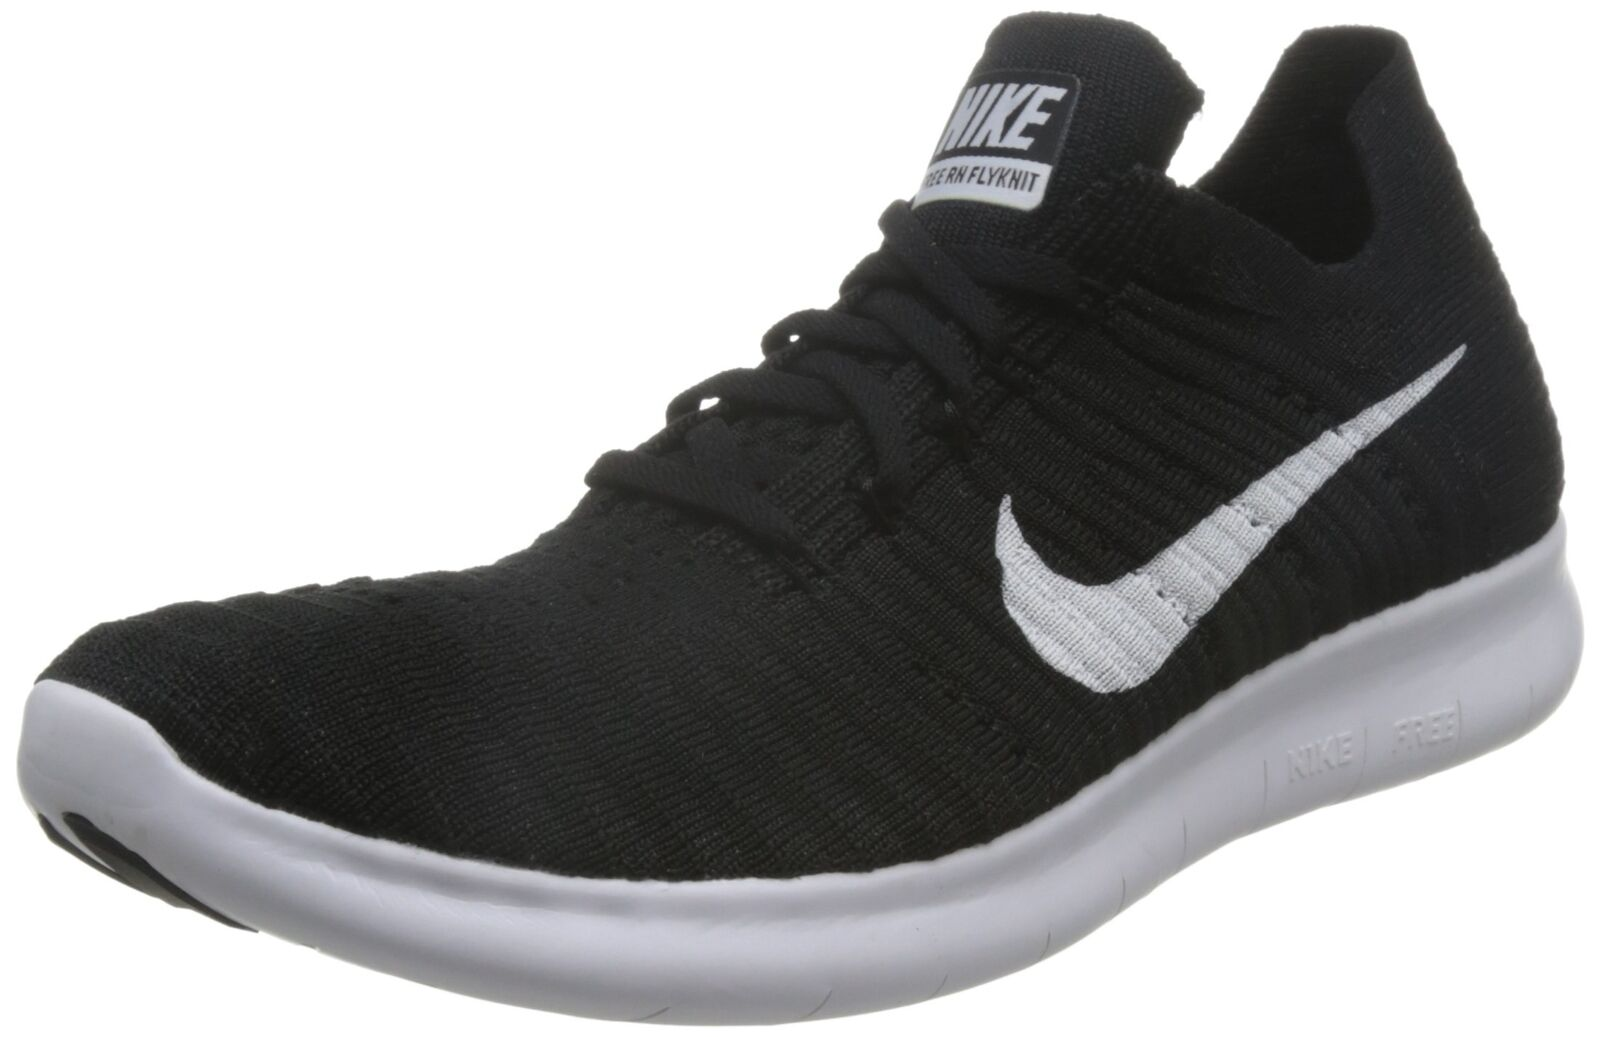 NIKE Men's Free Rn Flyknit Running Shoe Price reduction Brand discount